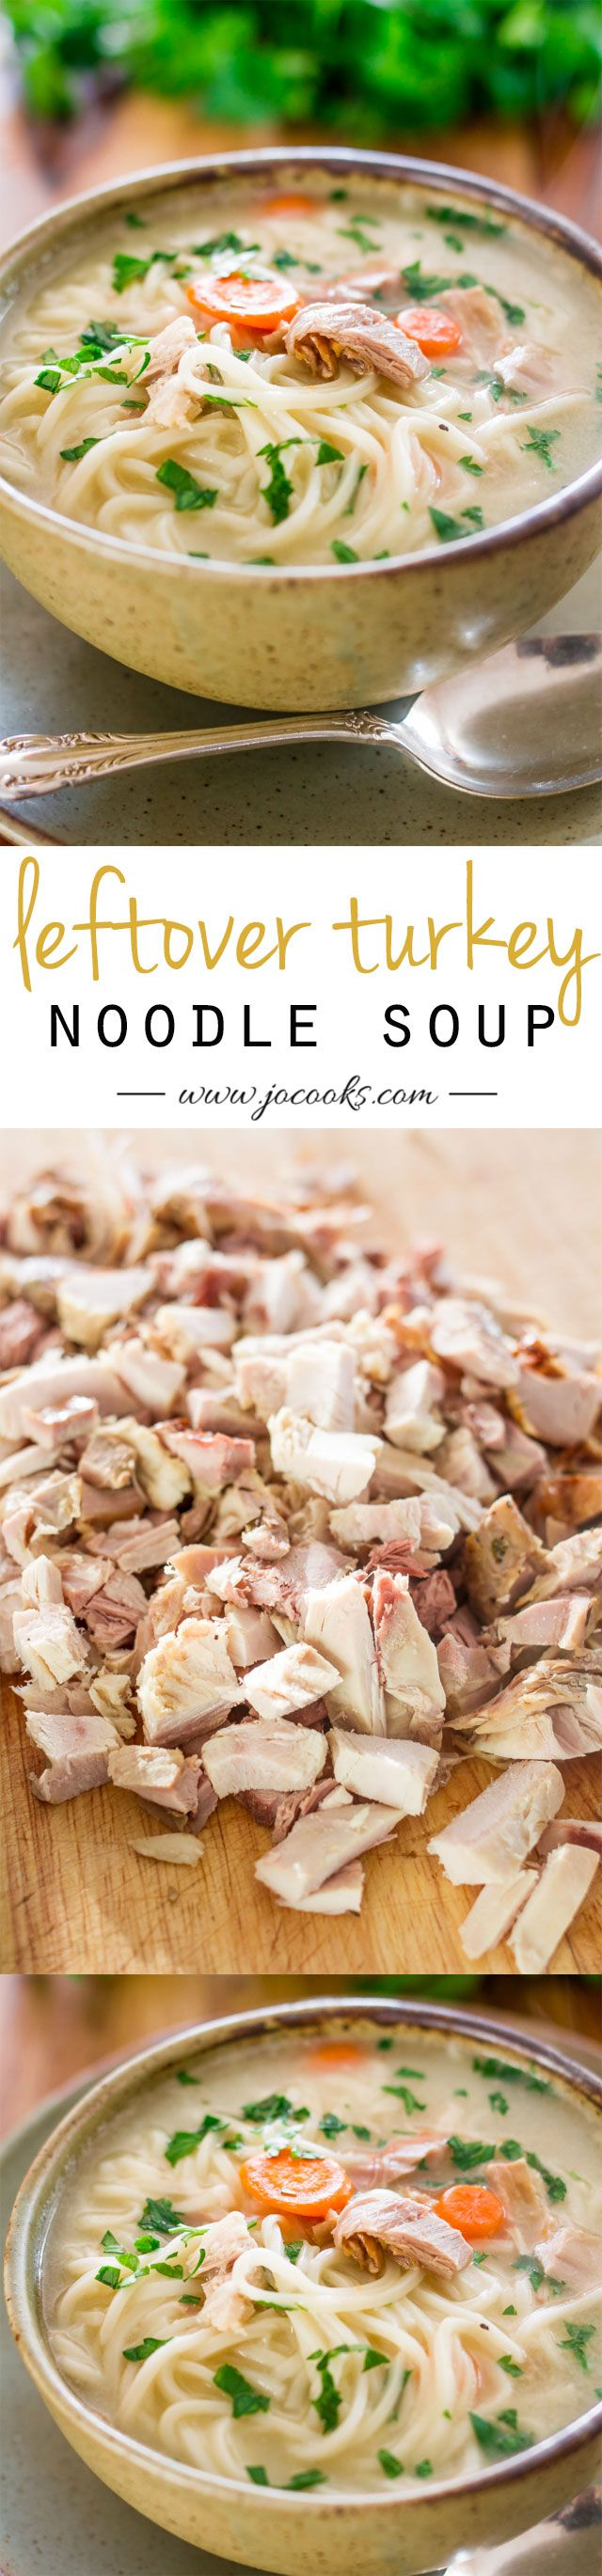 Leftover Turkey Noodle Soup - homemade turkey broth from the leftover turkey carcass, loaded with turkey and noodles. Perfect use of that leftover turkey.